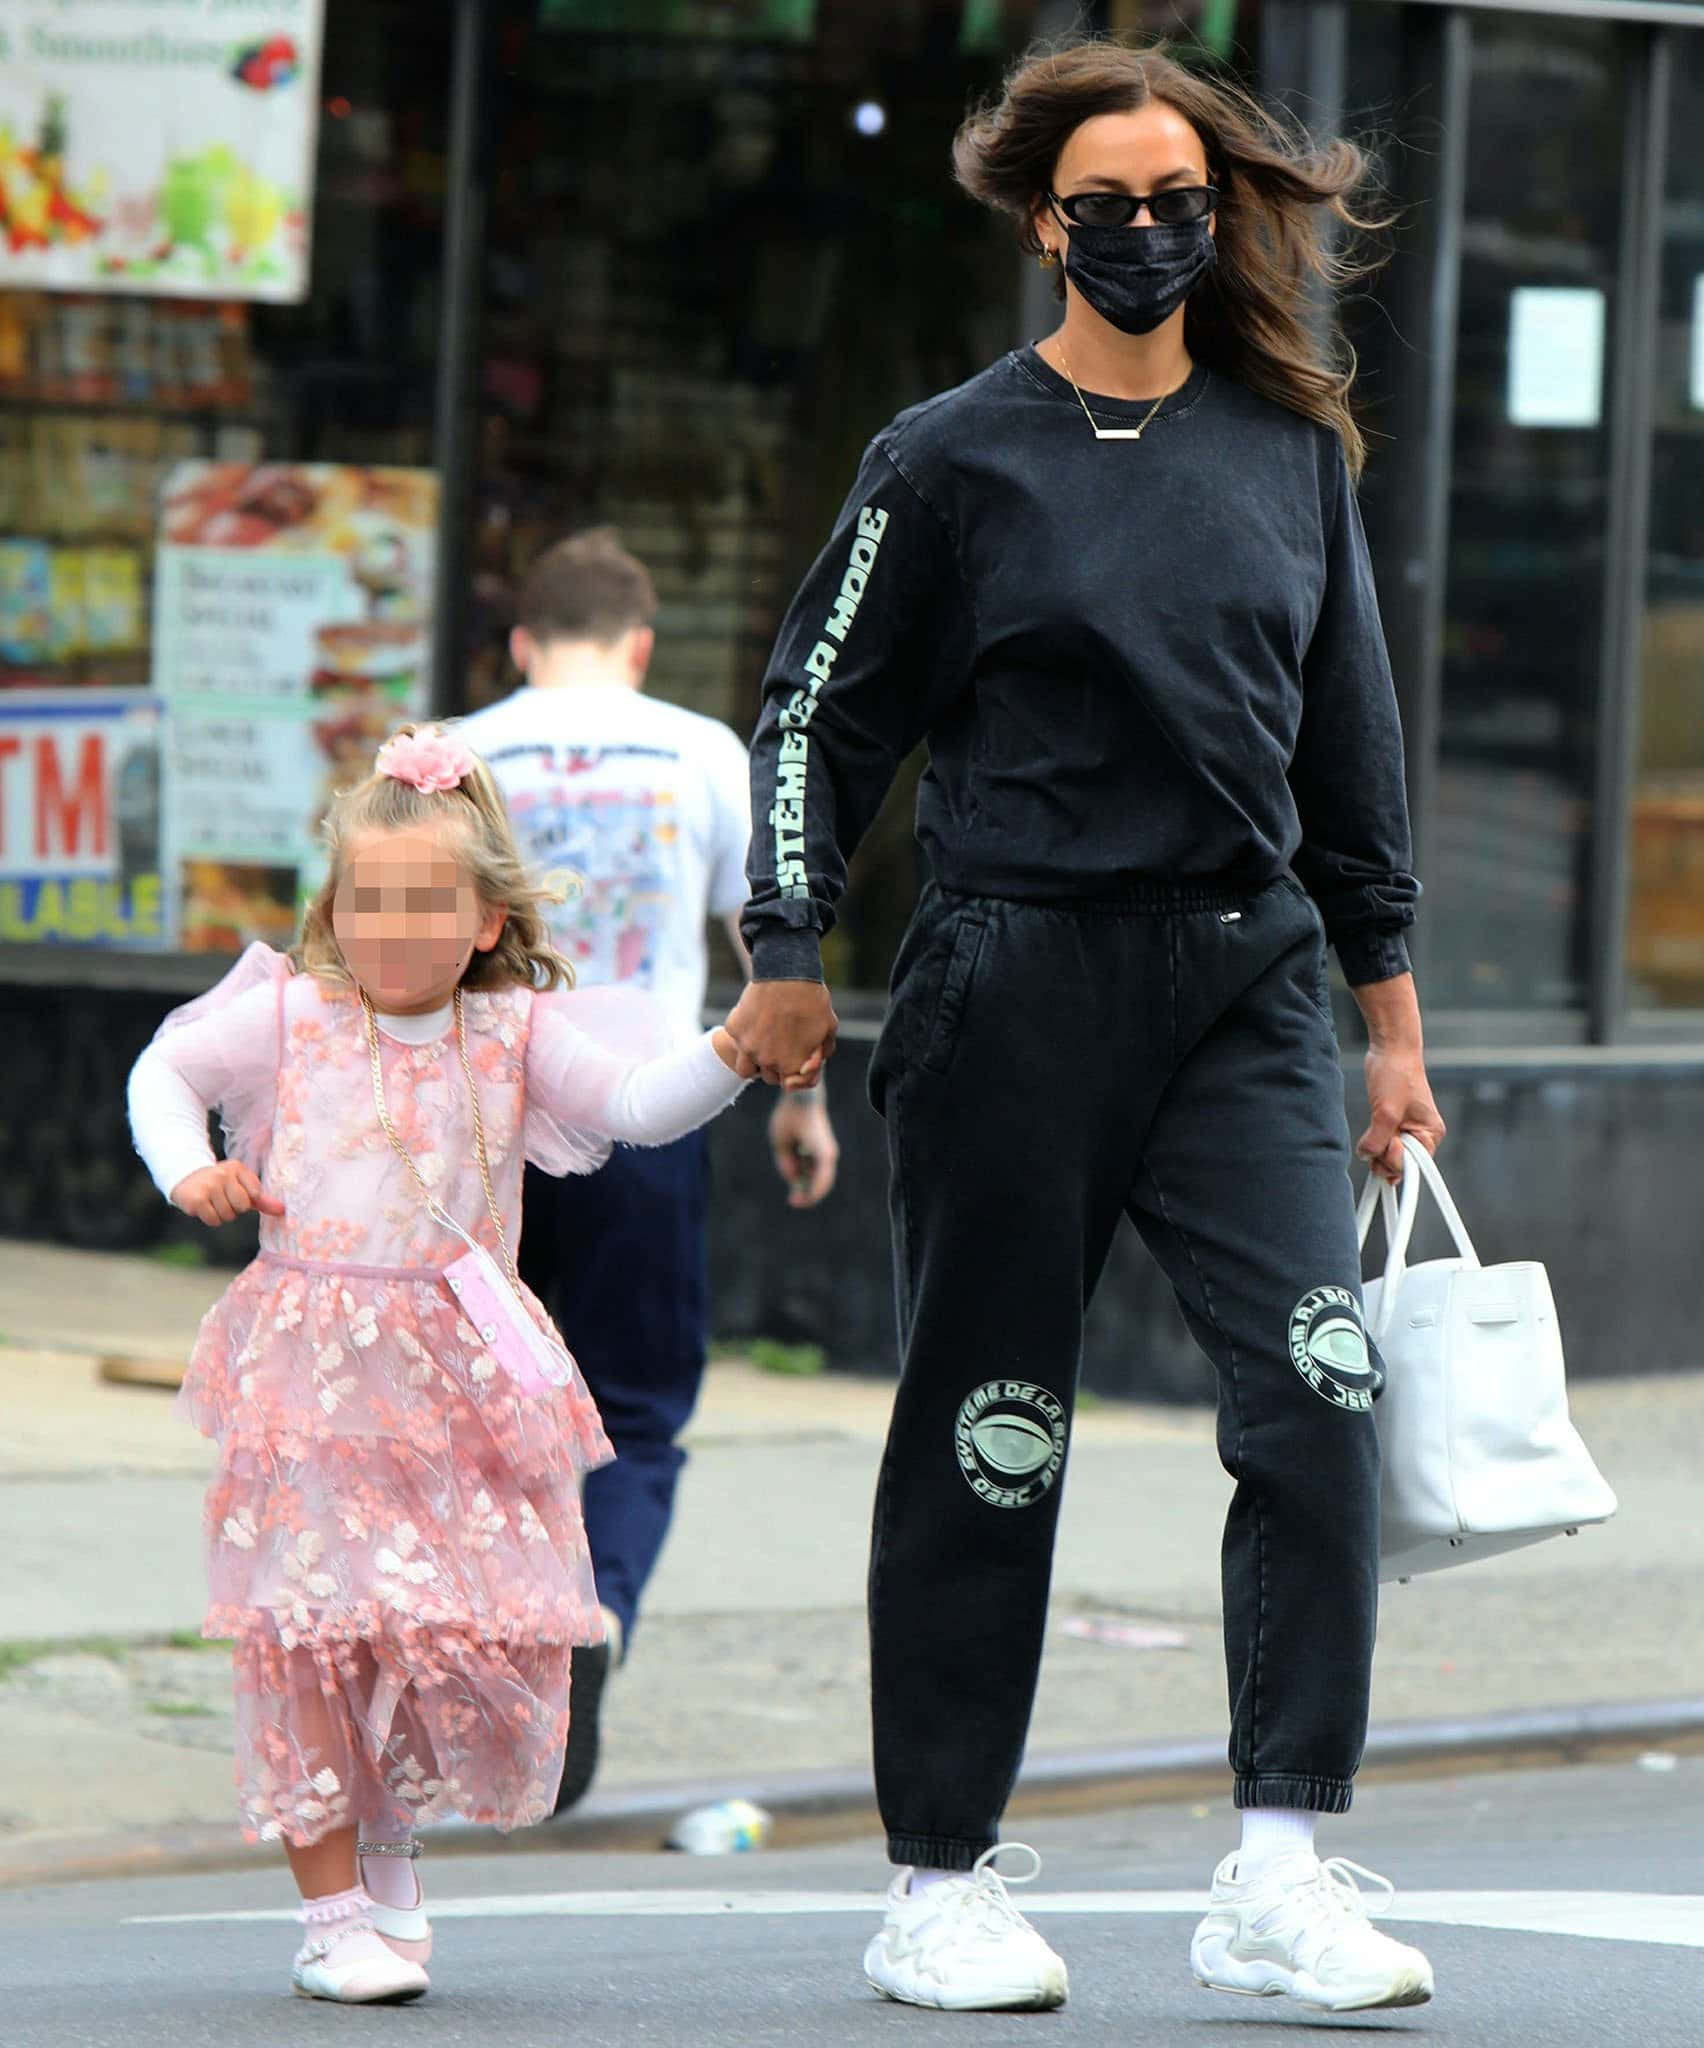 Irina Shayk shows off street style in 032C sweatsuit while Lea dresses up in Self-Portrait pink dress